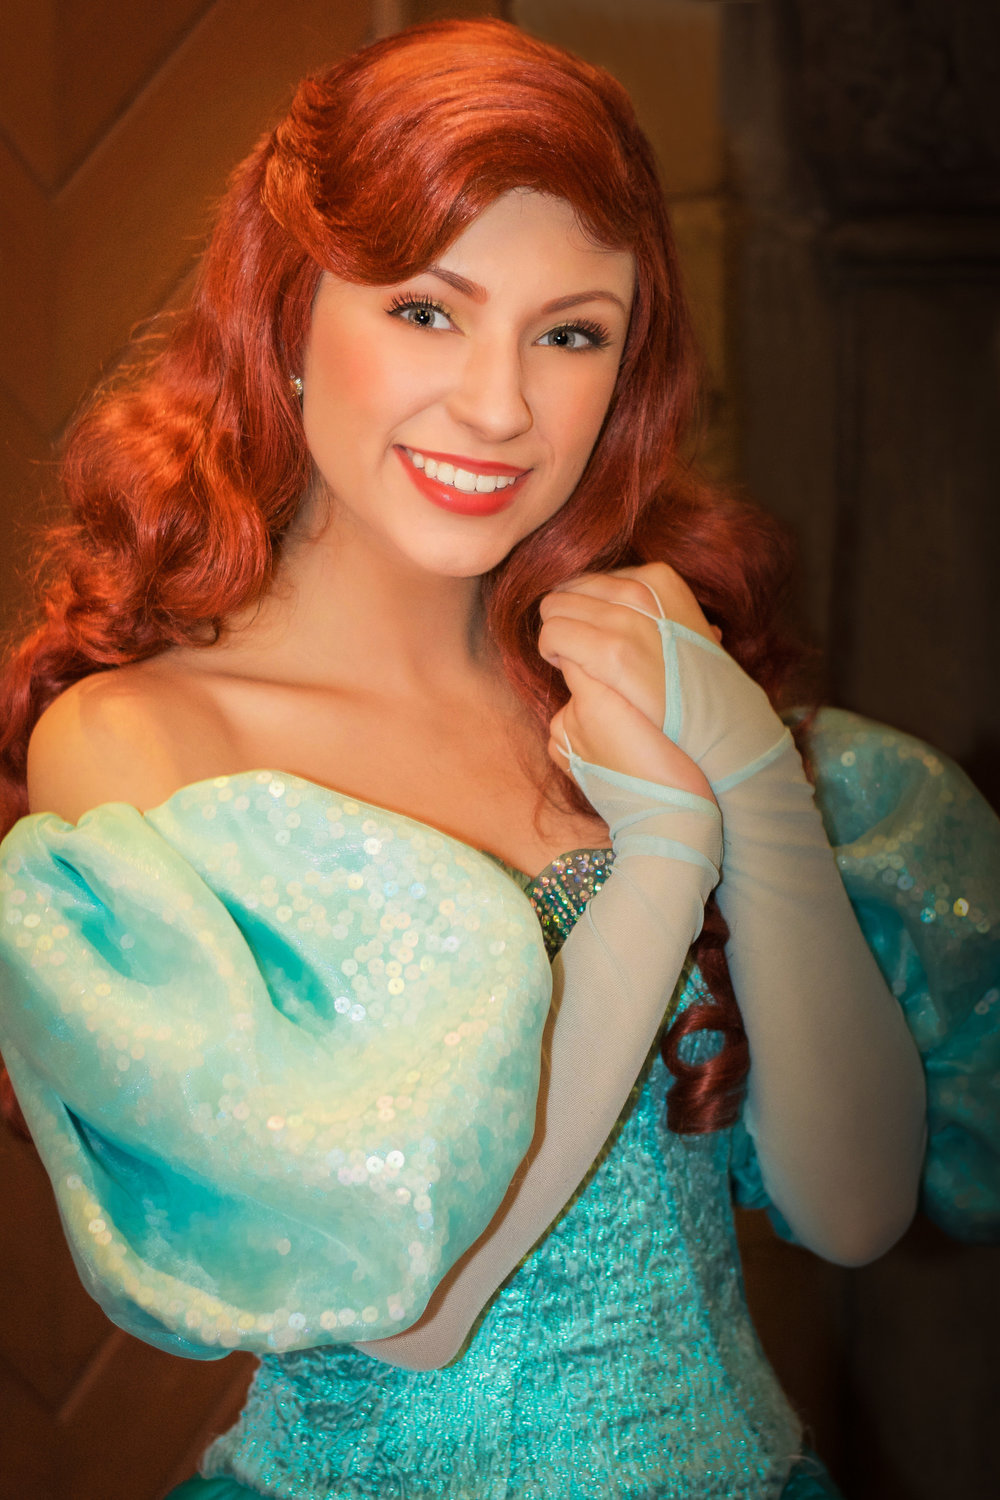 Ariel (Little Mermaid)